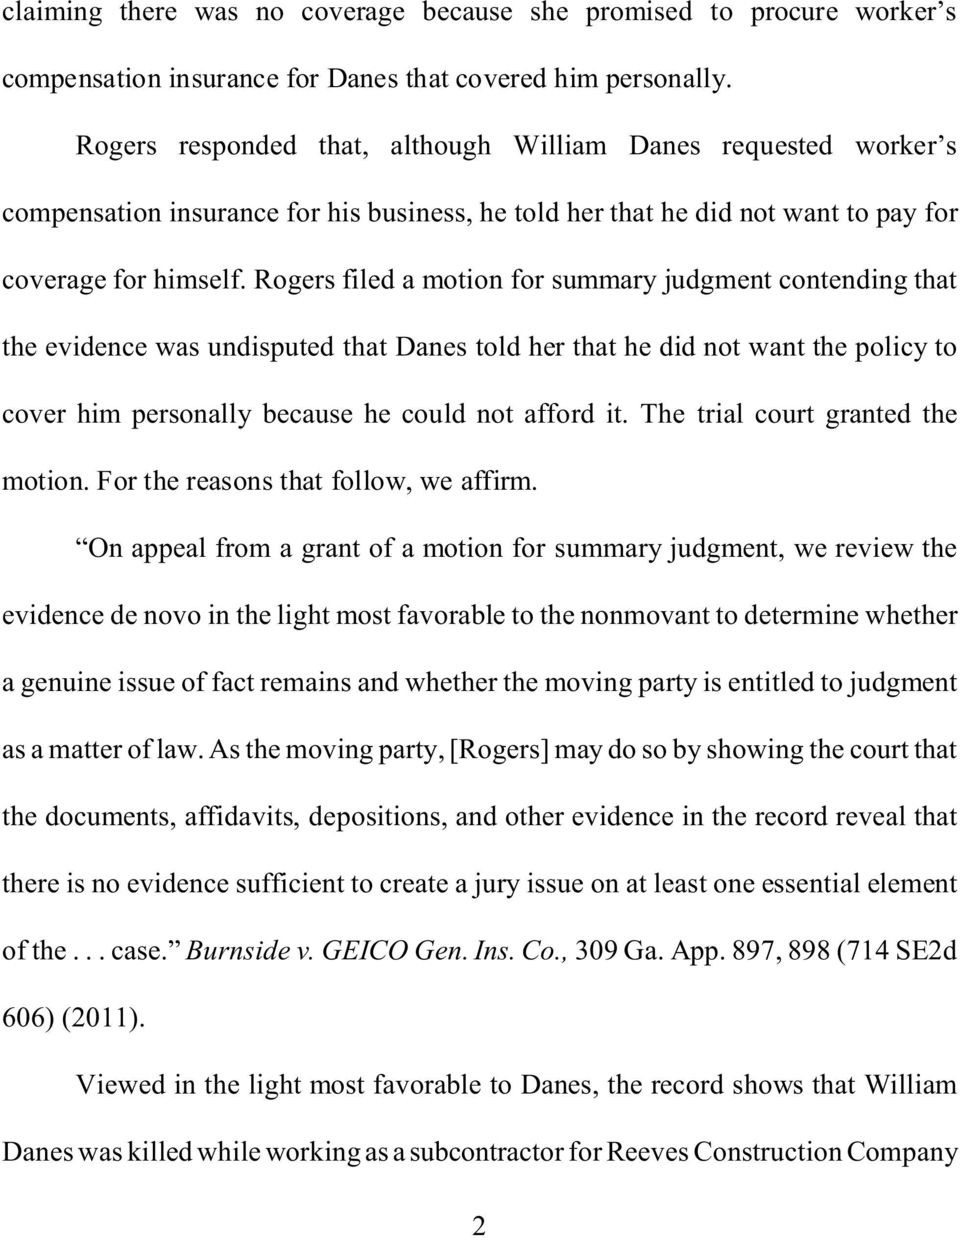 Rogers filed a motion for summary judgment contending that the evidence was undisputed that Danes told her that he did not want the policy to cover him personally because he could not afford it.